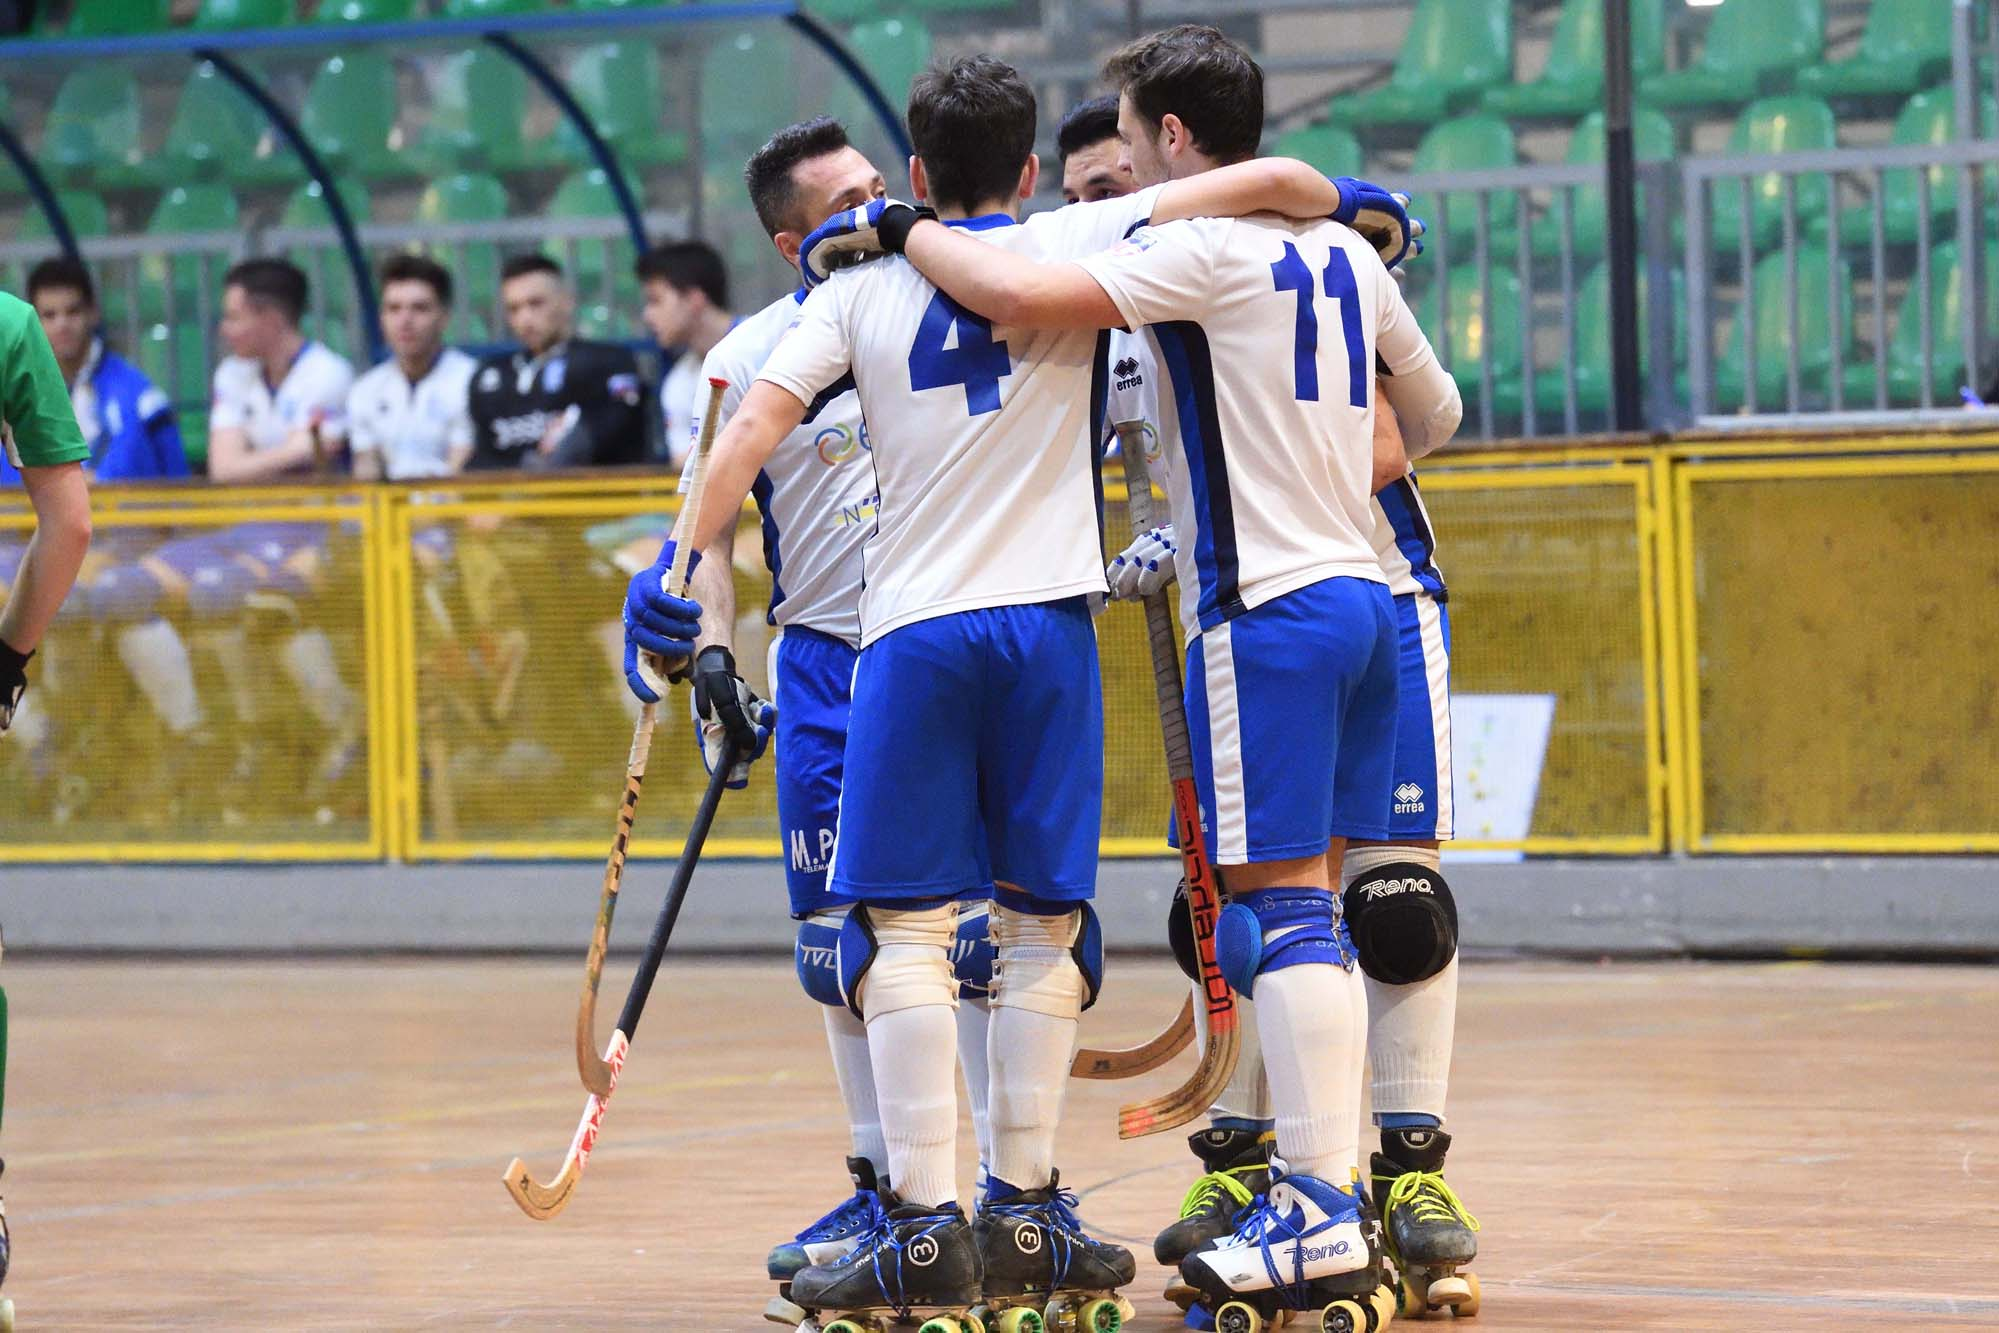 Rotellistica Camaiore Vs Hockey Prato 54 estra